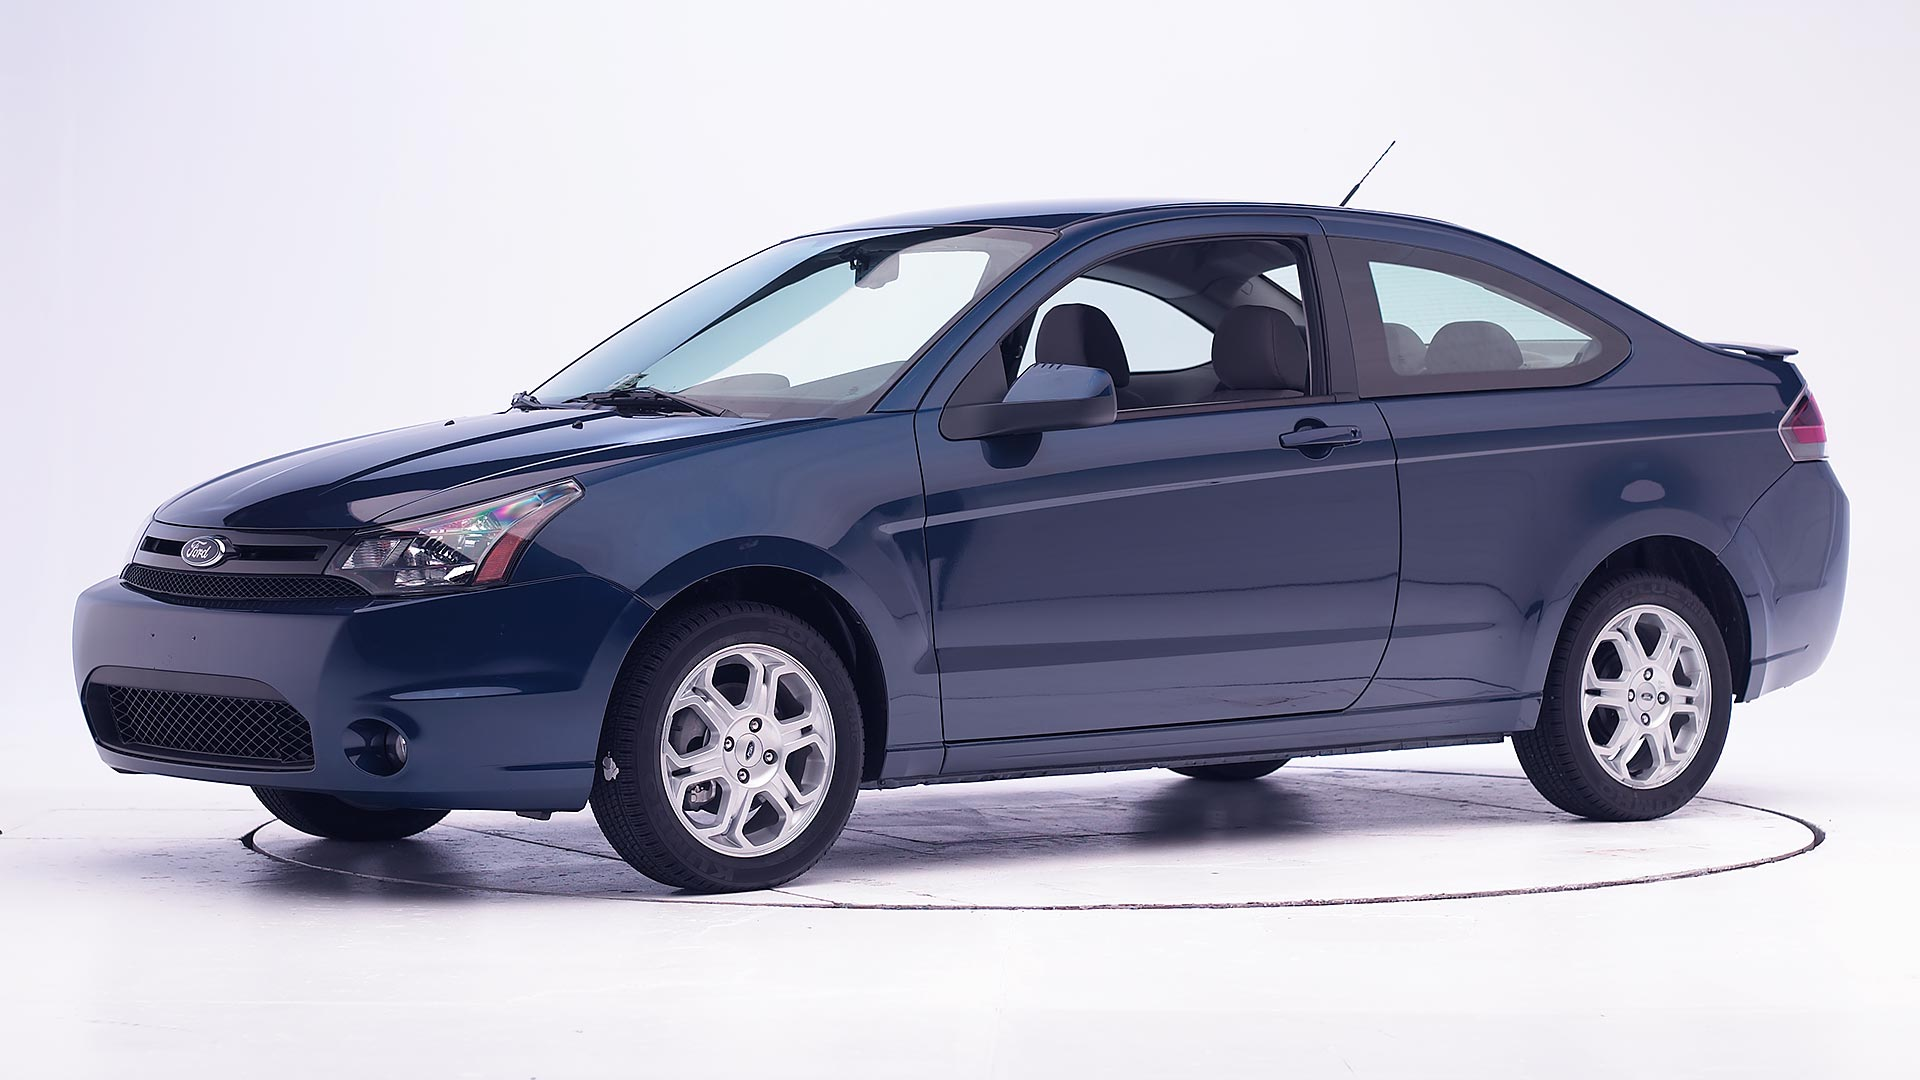 2010 Ford Focus 2-door coupe